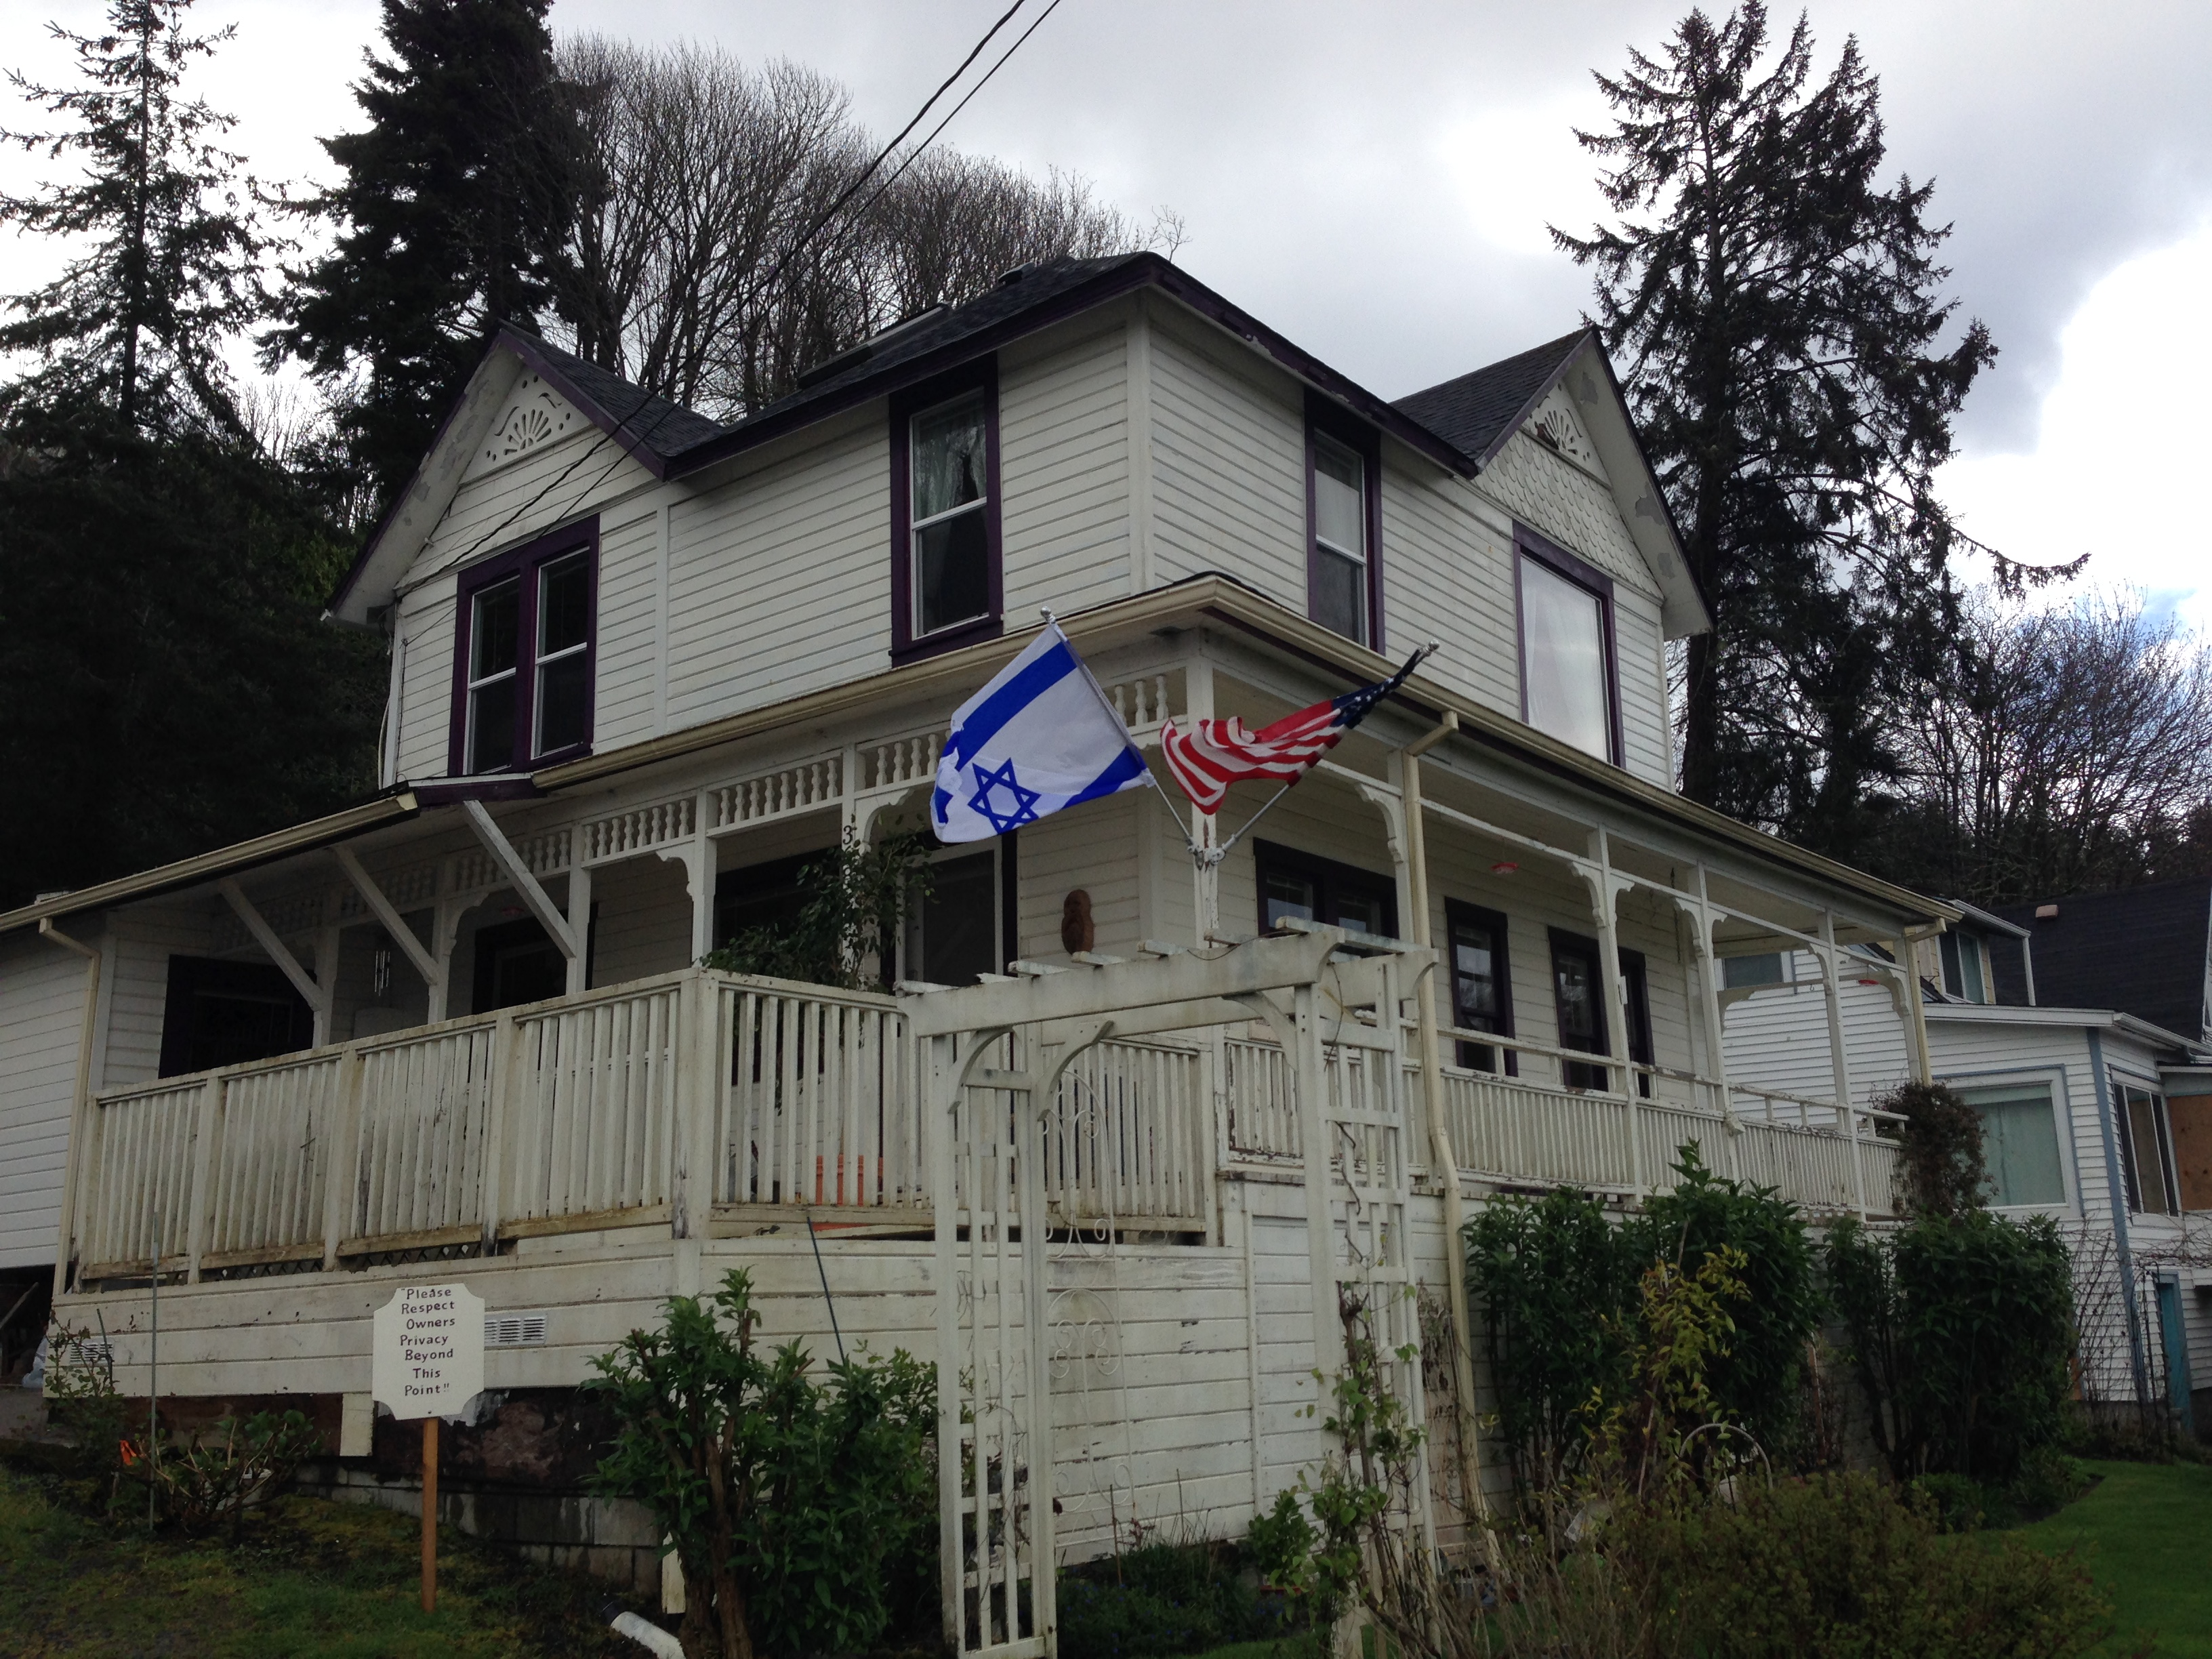 Nice The House Featured In The Classic And Beloved 80s Movie The Goonies Is  Real. Itu0027s Located In Astoria, Oregon, On A Hill That Offers Pleasant Views  Of The ...